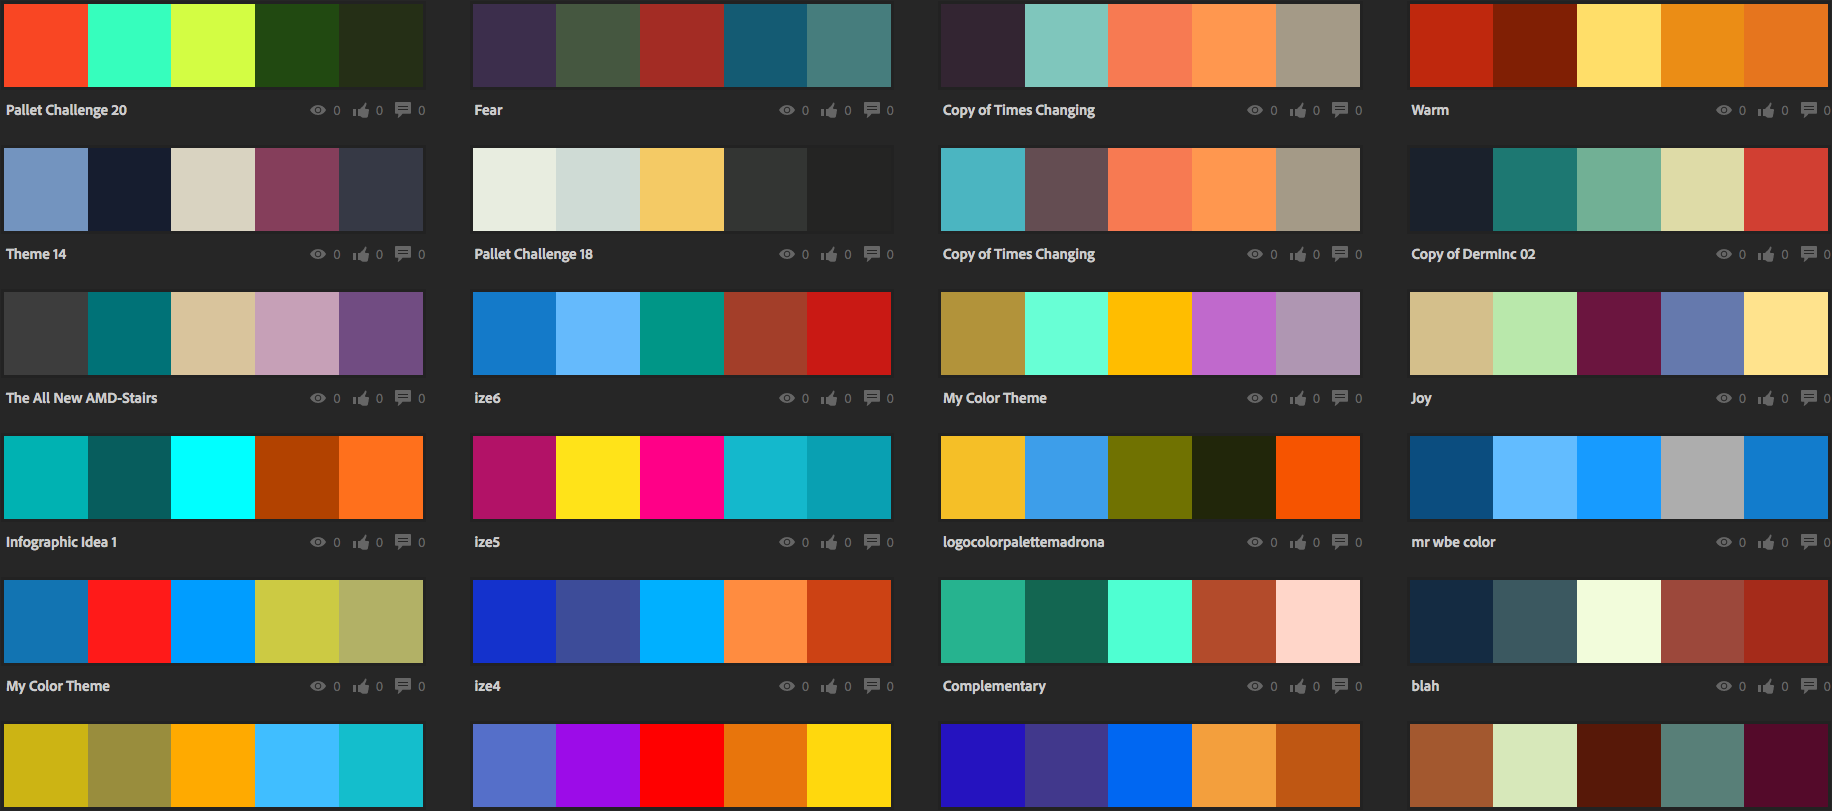 Color palettes created by Adobe Color users